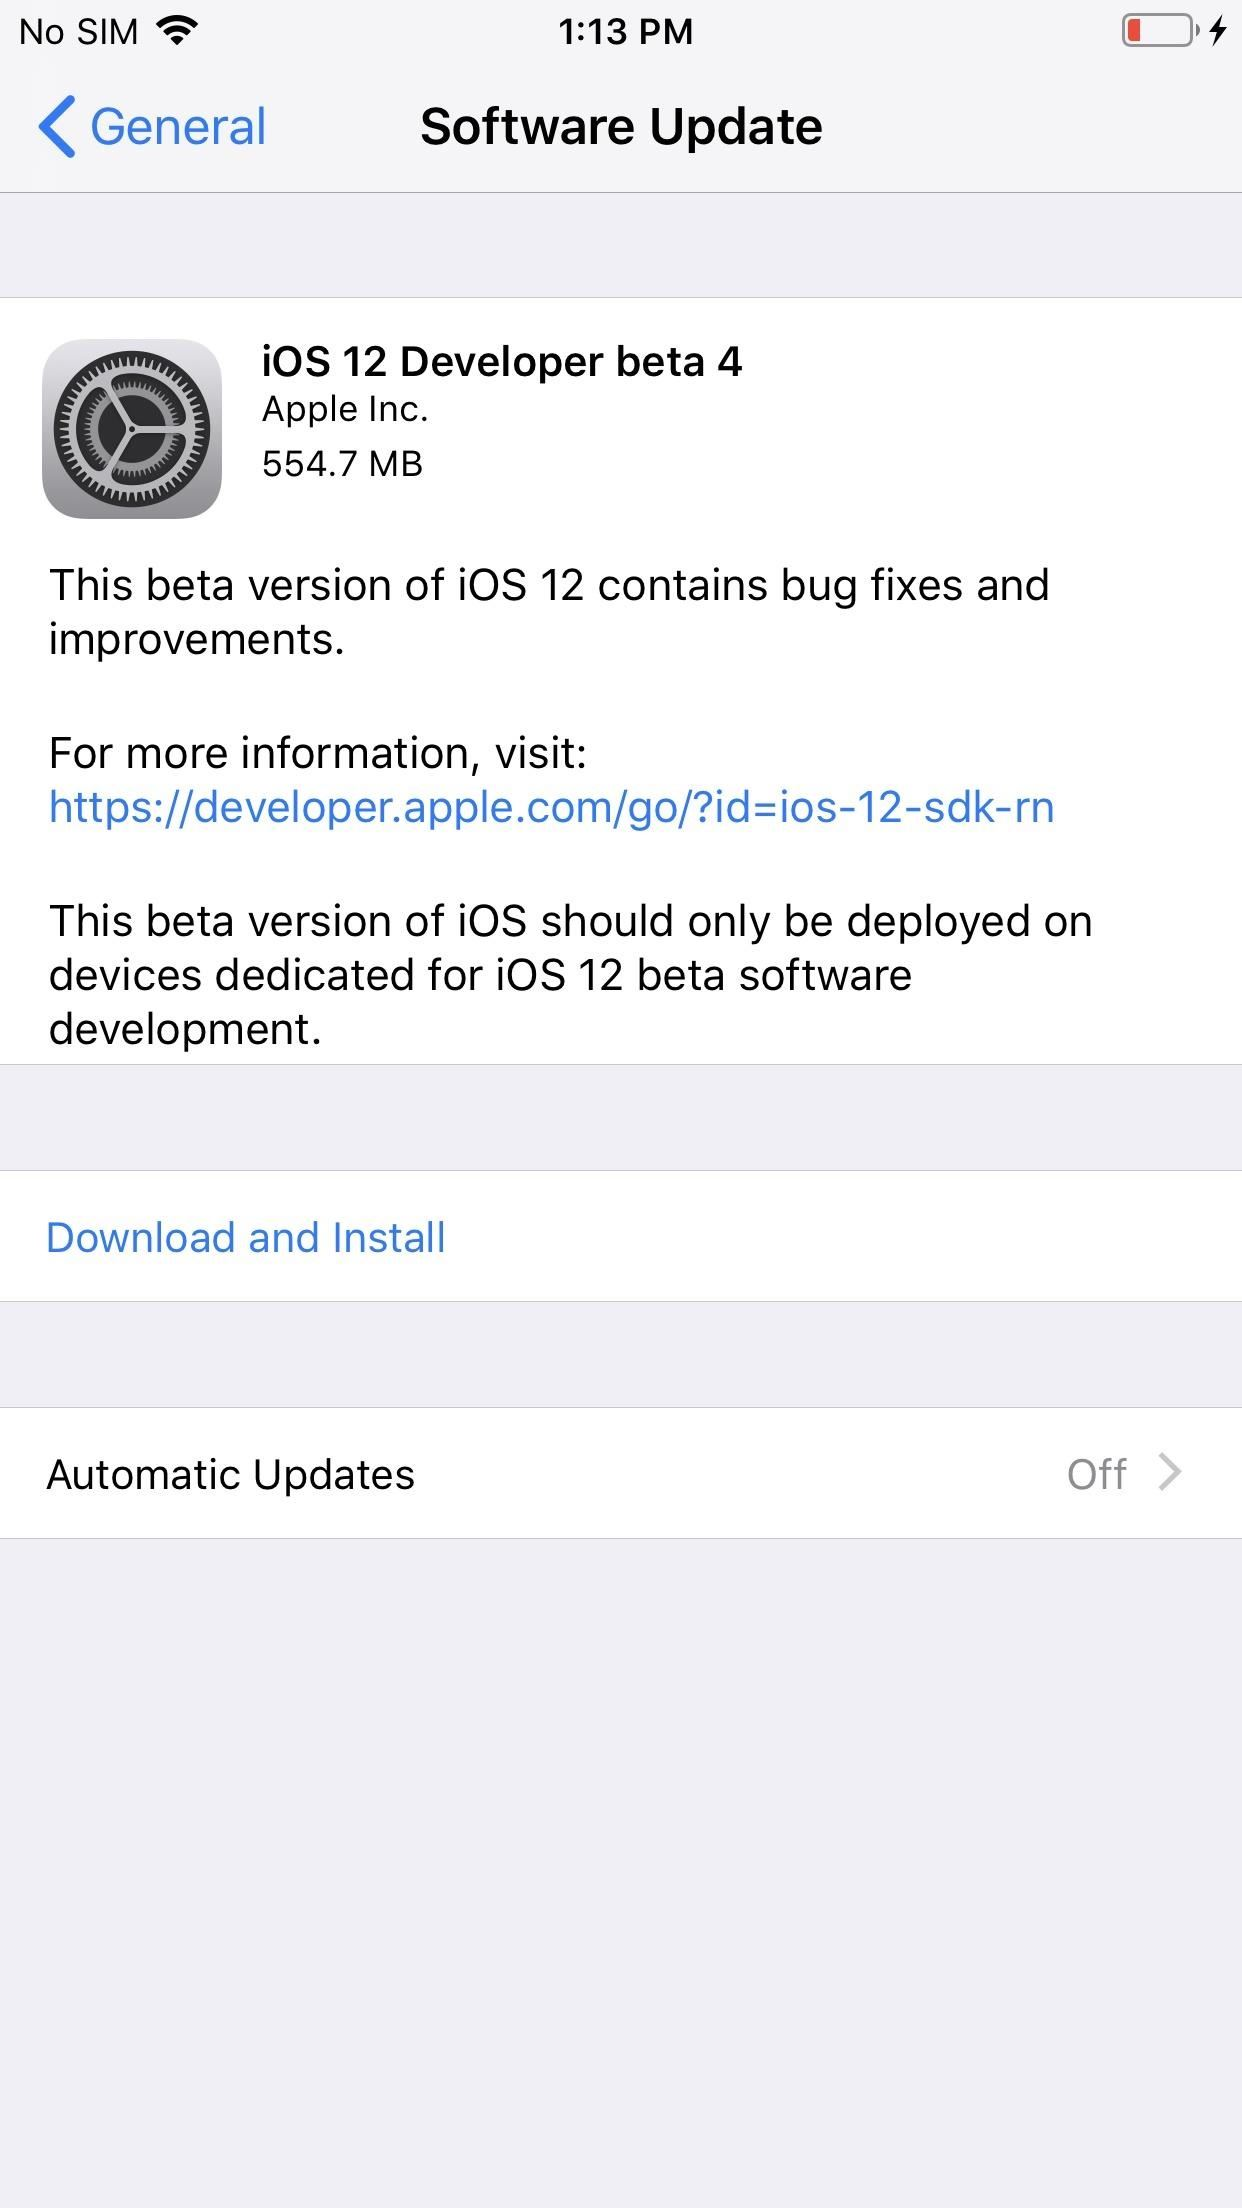 iOS 12 Beta 4 for iPhone Released to Developers